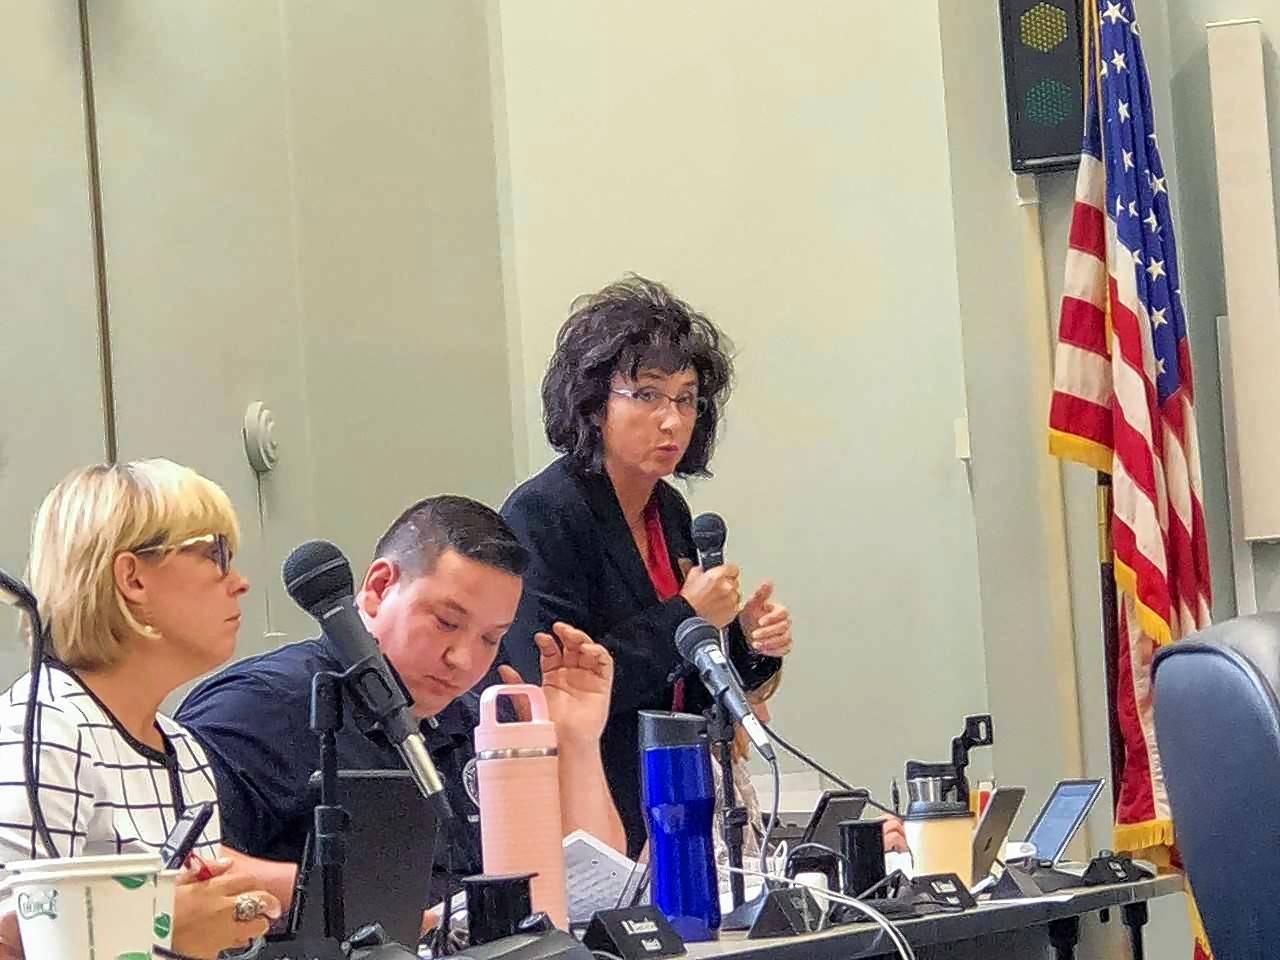 Kane County Board member Theresa Barreiro spearheaded an effort to spend down reserves instead of cutting public safety to balance the 2018 budget.